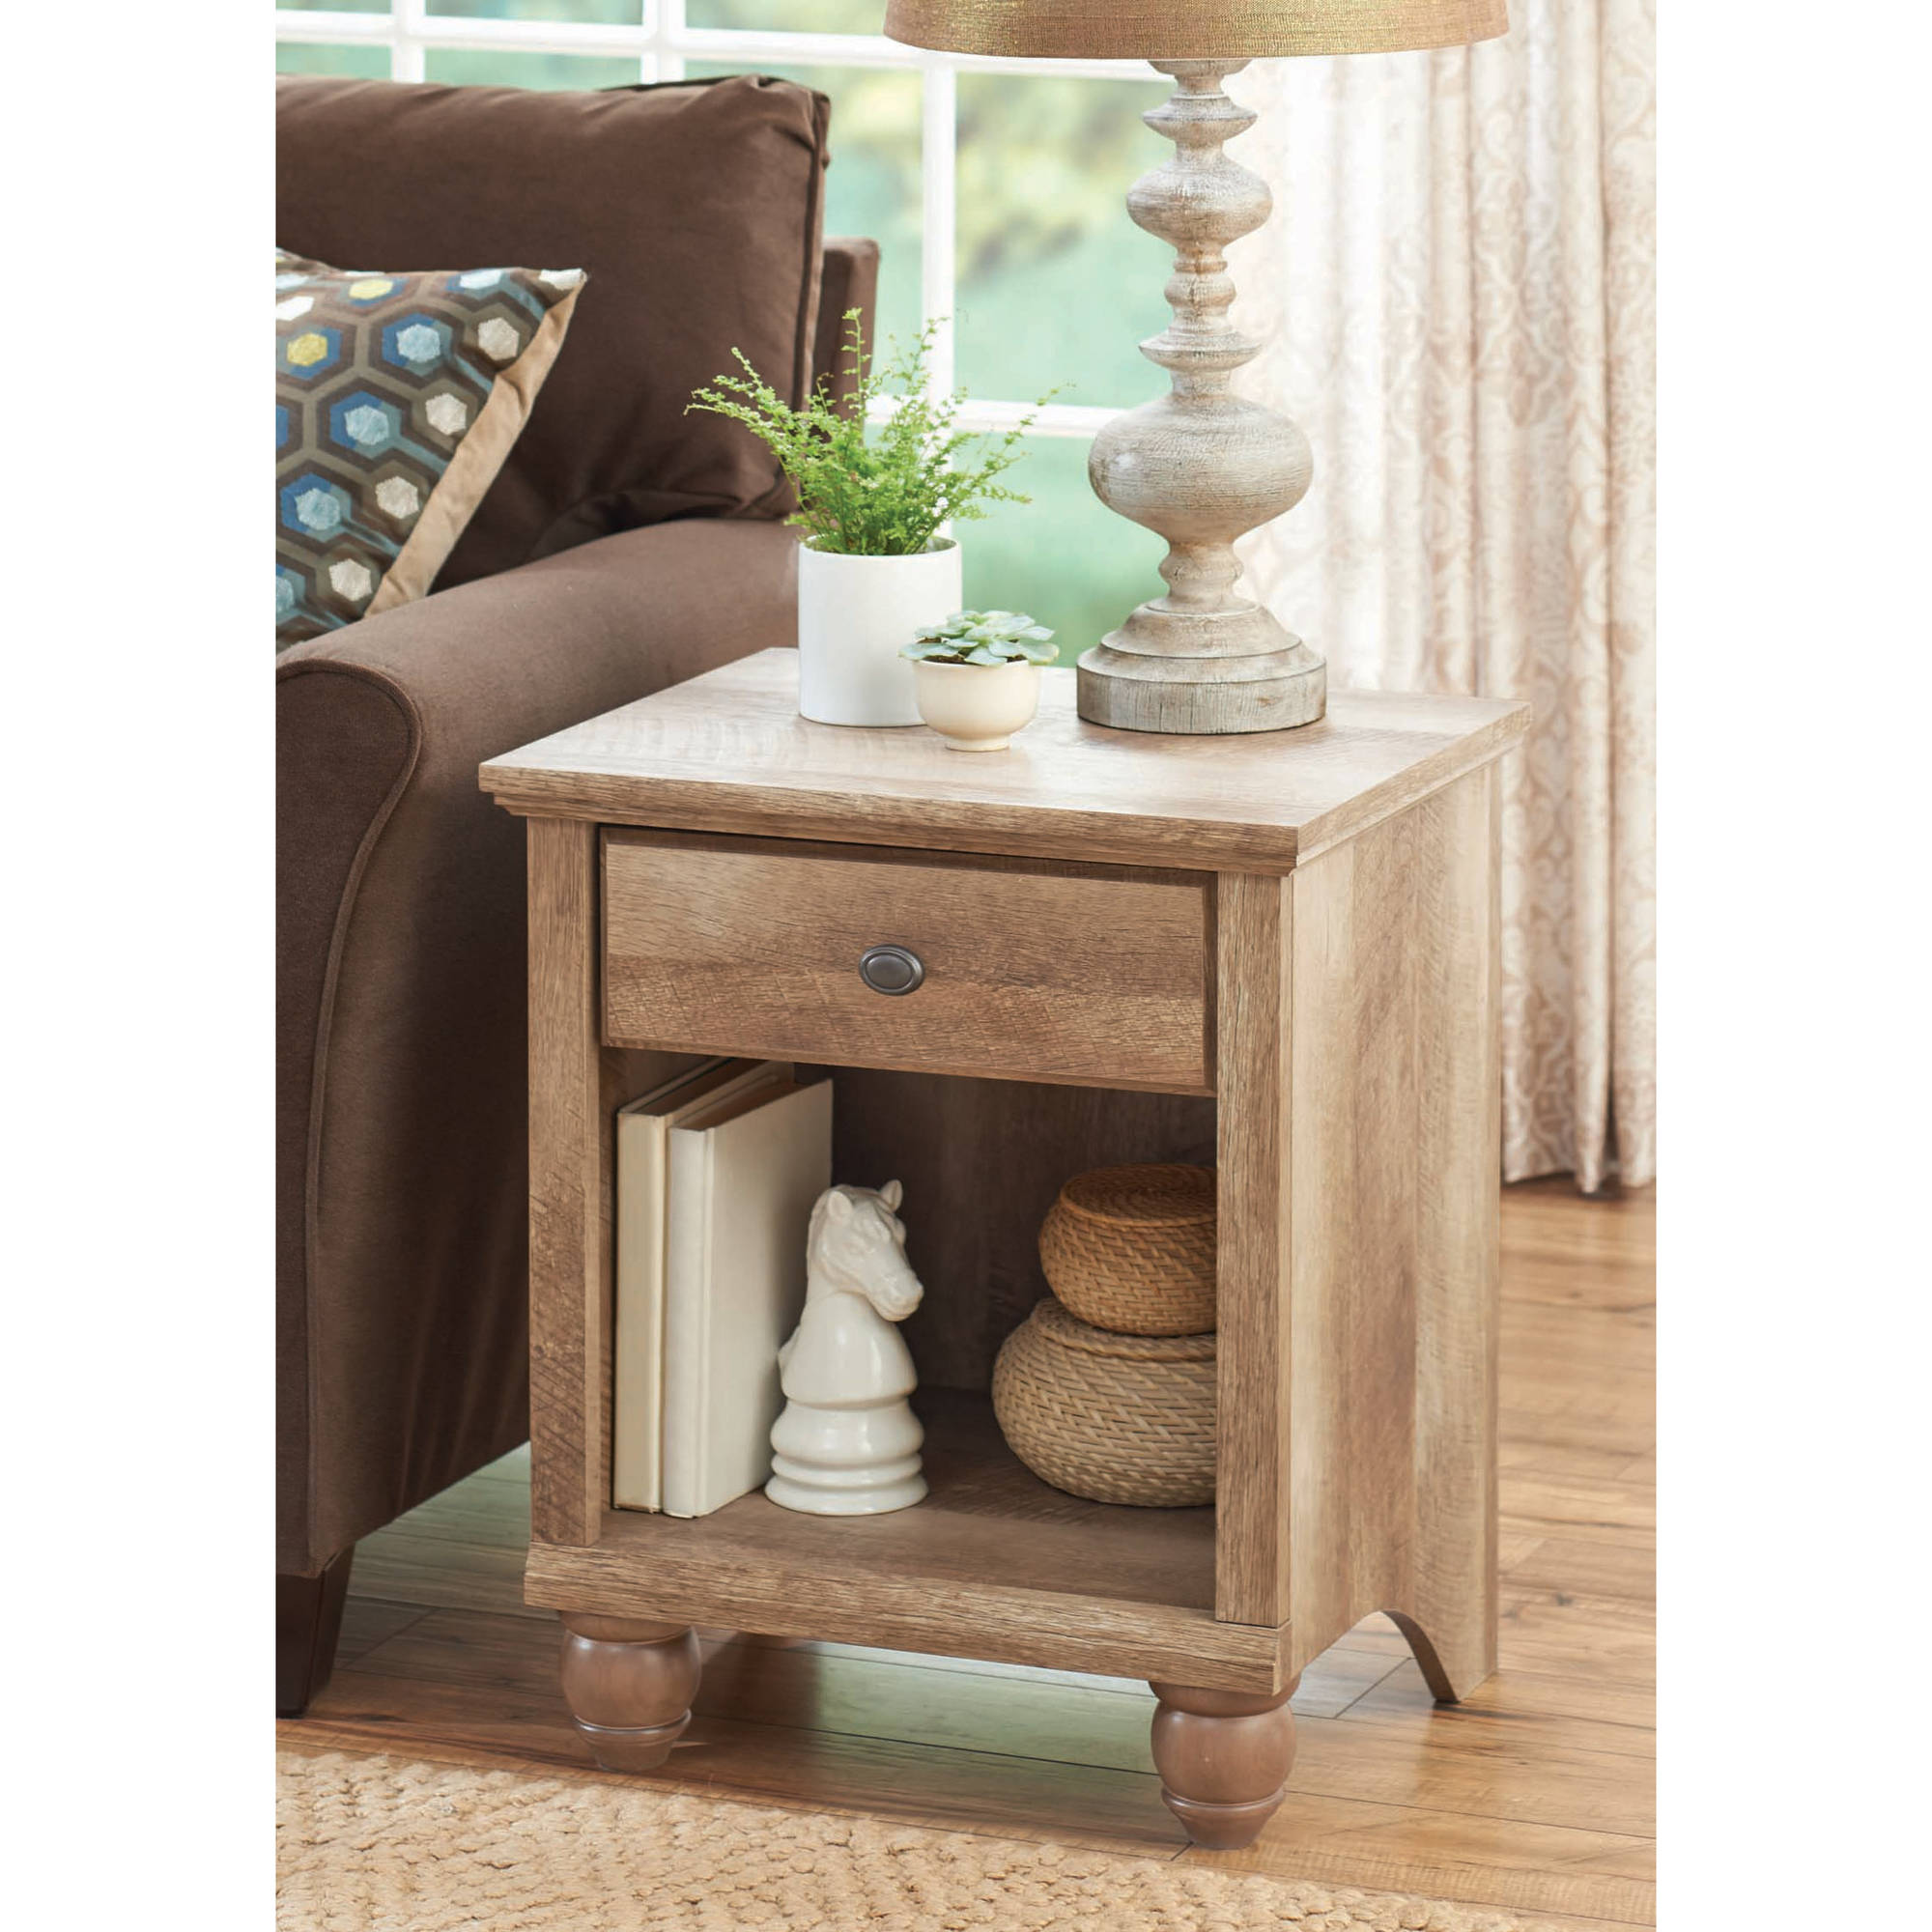 better homes gardens crossmill accent table weathered finish side with drawer drum seat cover glass patio end hall console gallerie chandelier cordless bedside lamps waterproof